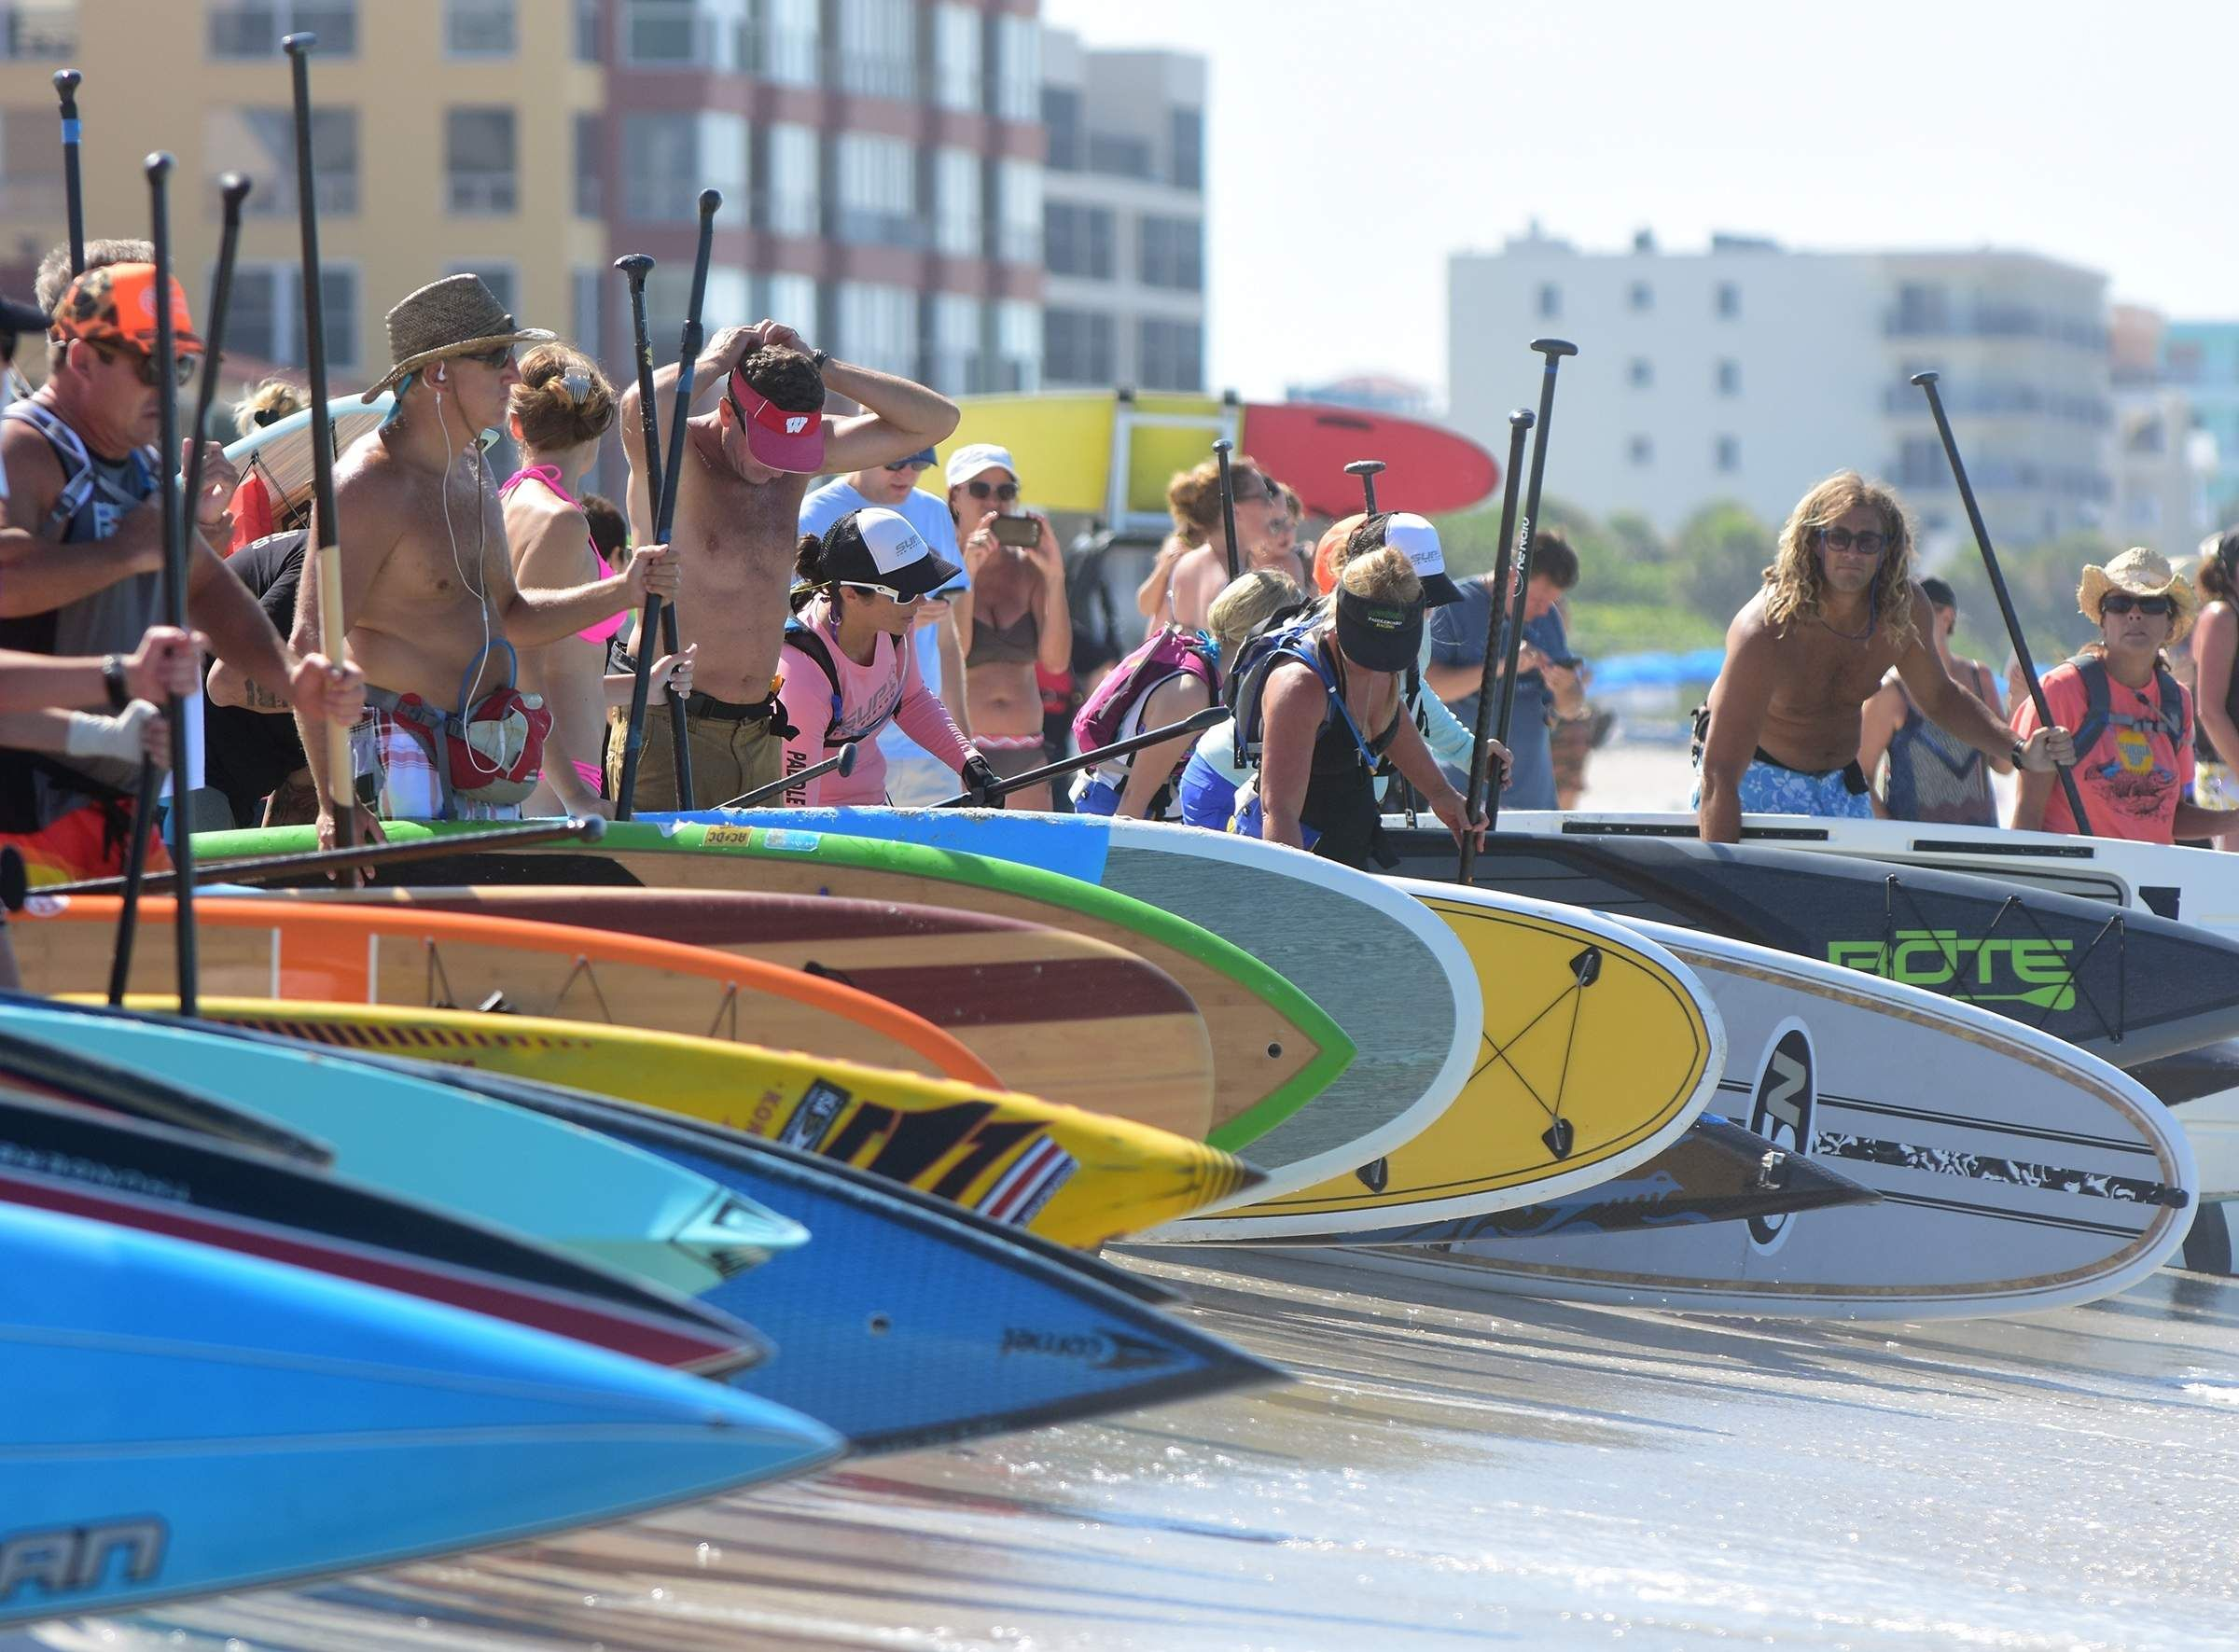 Paddleboarders Rendezvous Off Pinellas Coast Madeira Beach Clearwater Beach Treasure Island